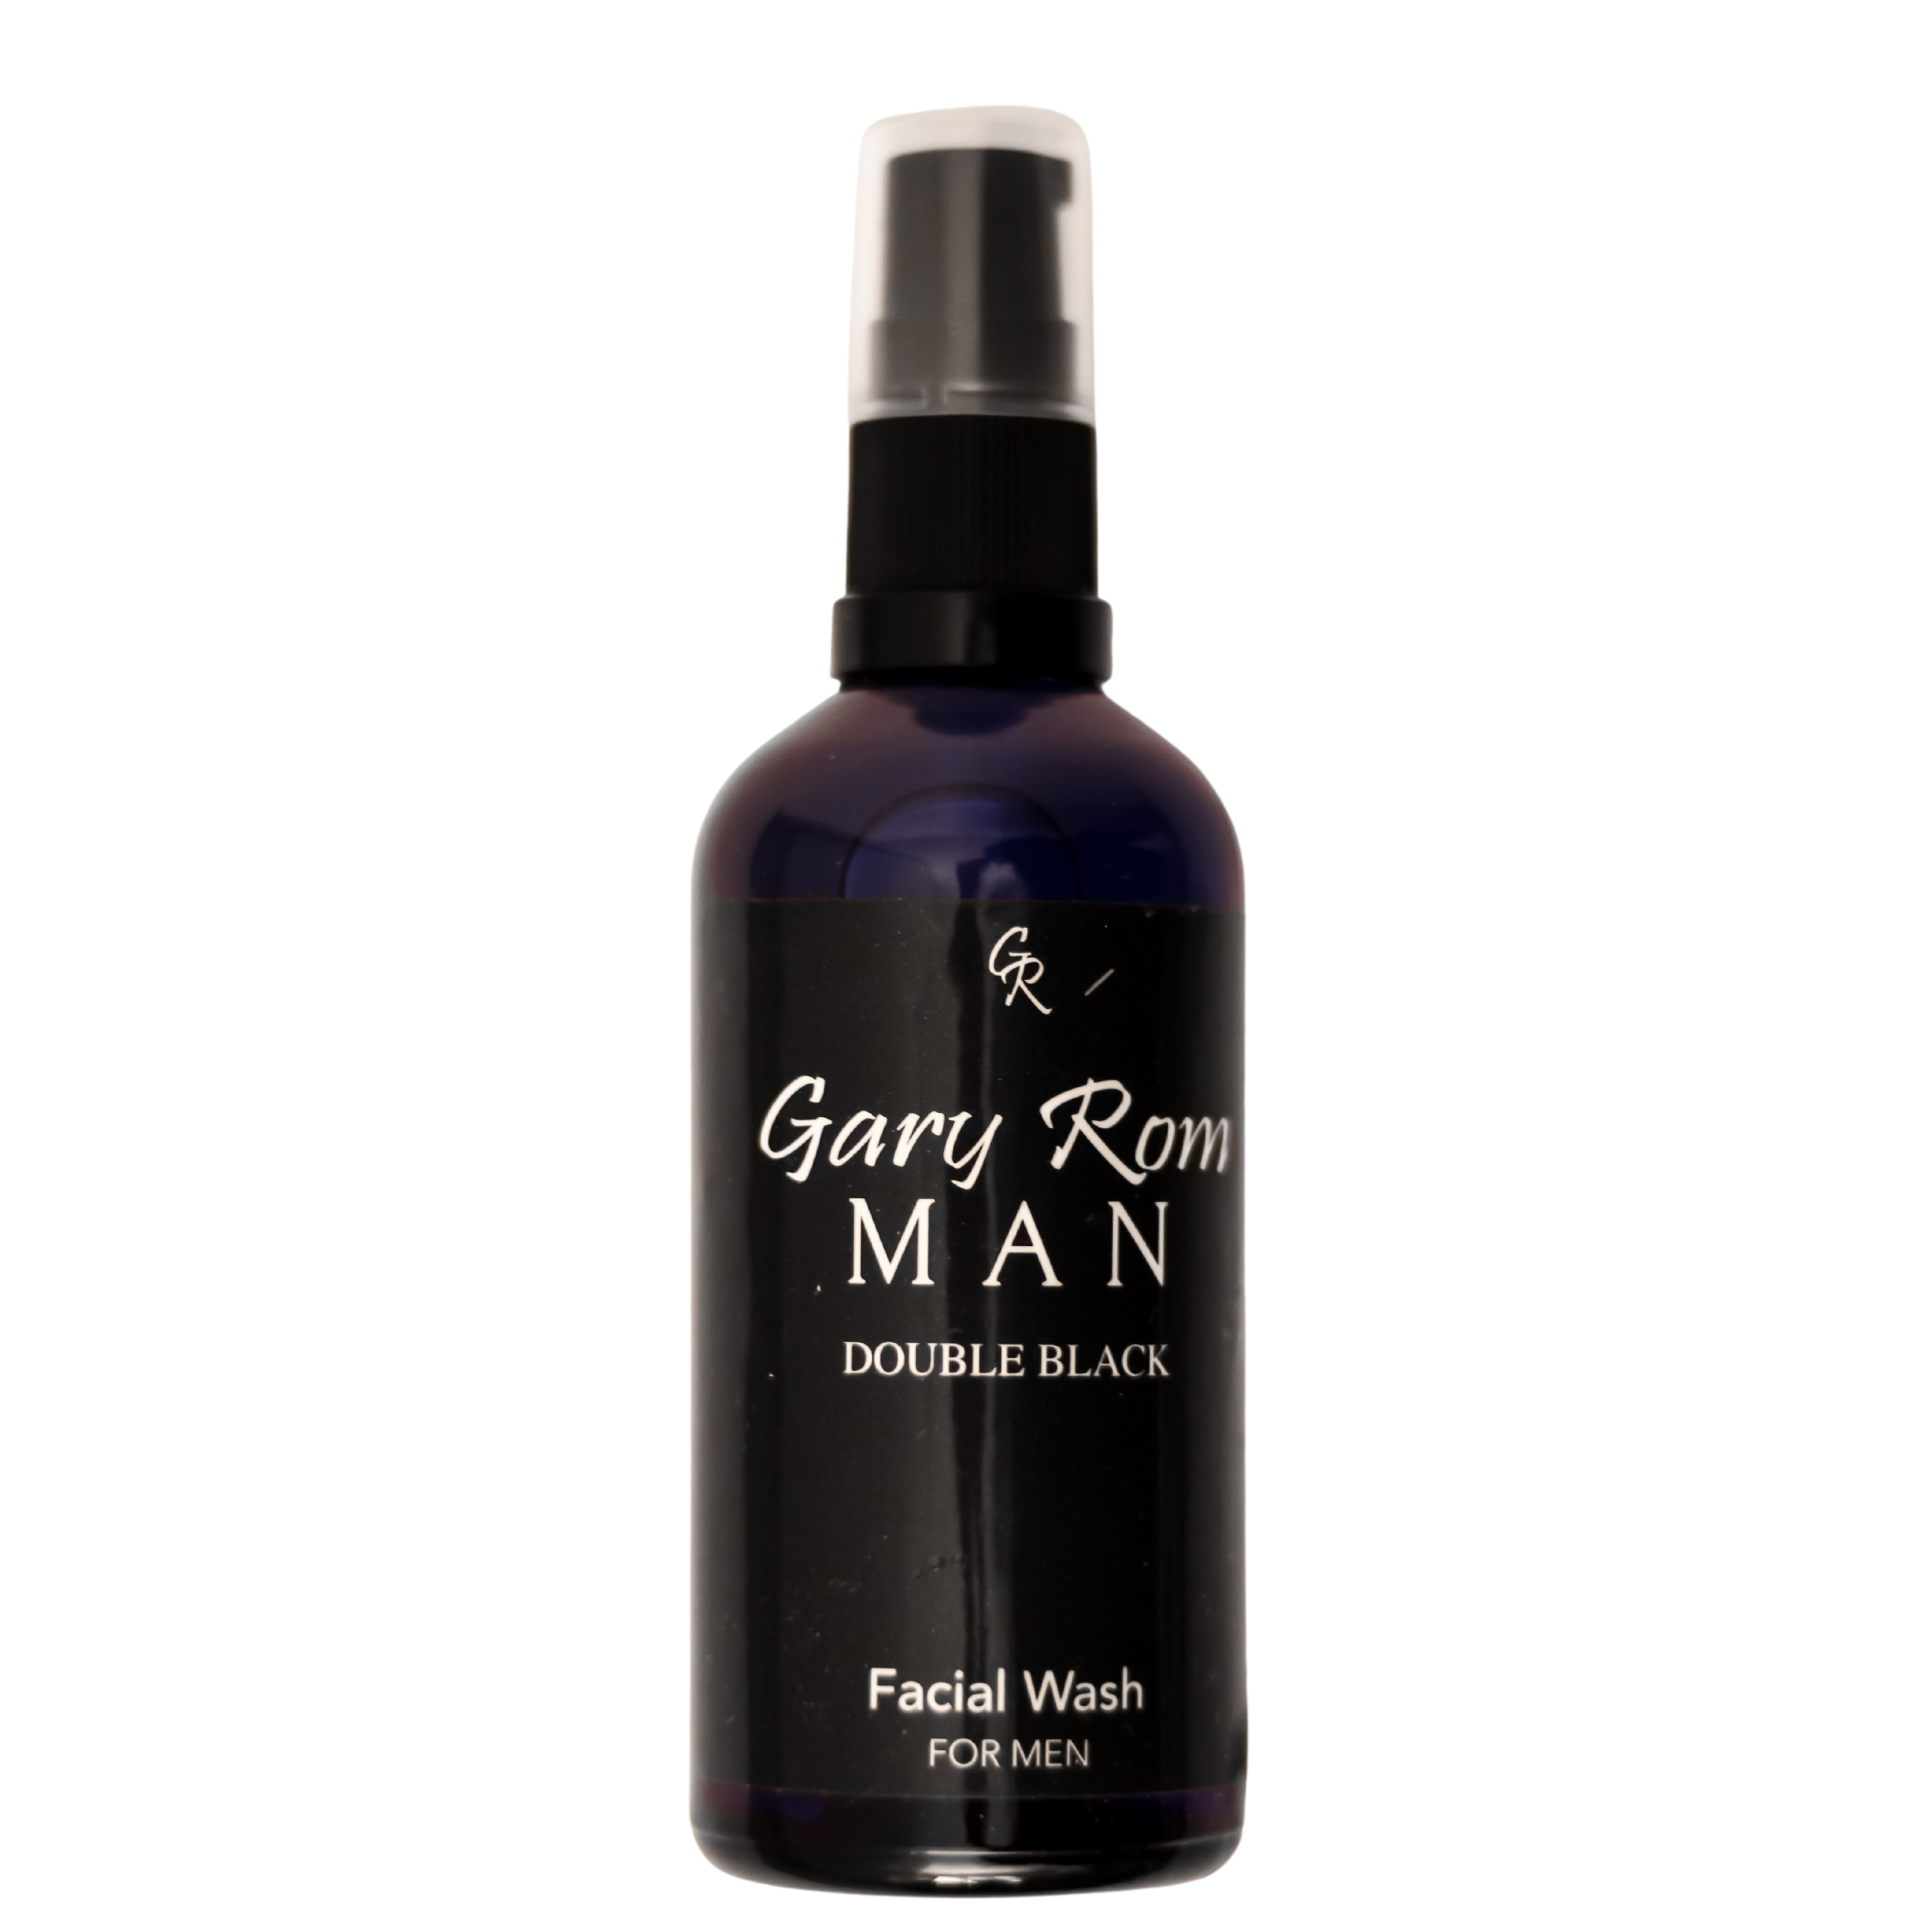 Gary Rom Double Black Face Wash